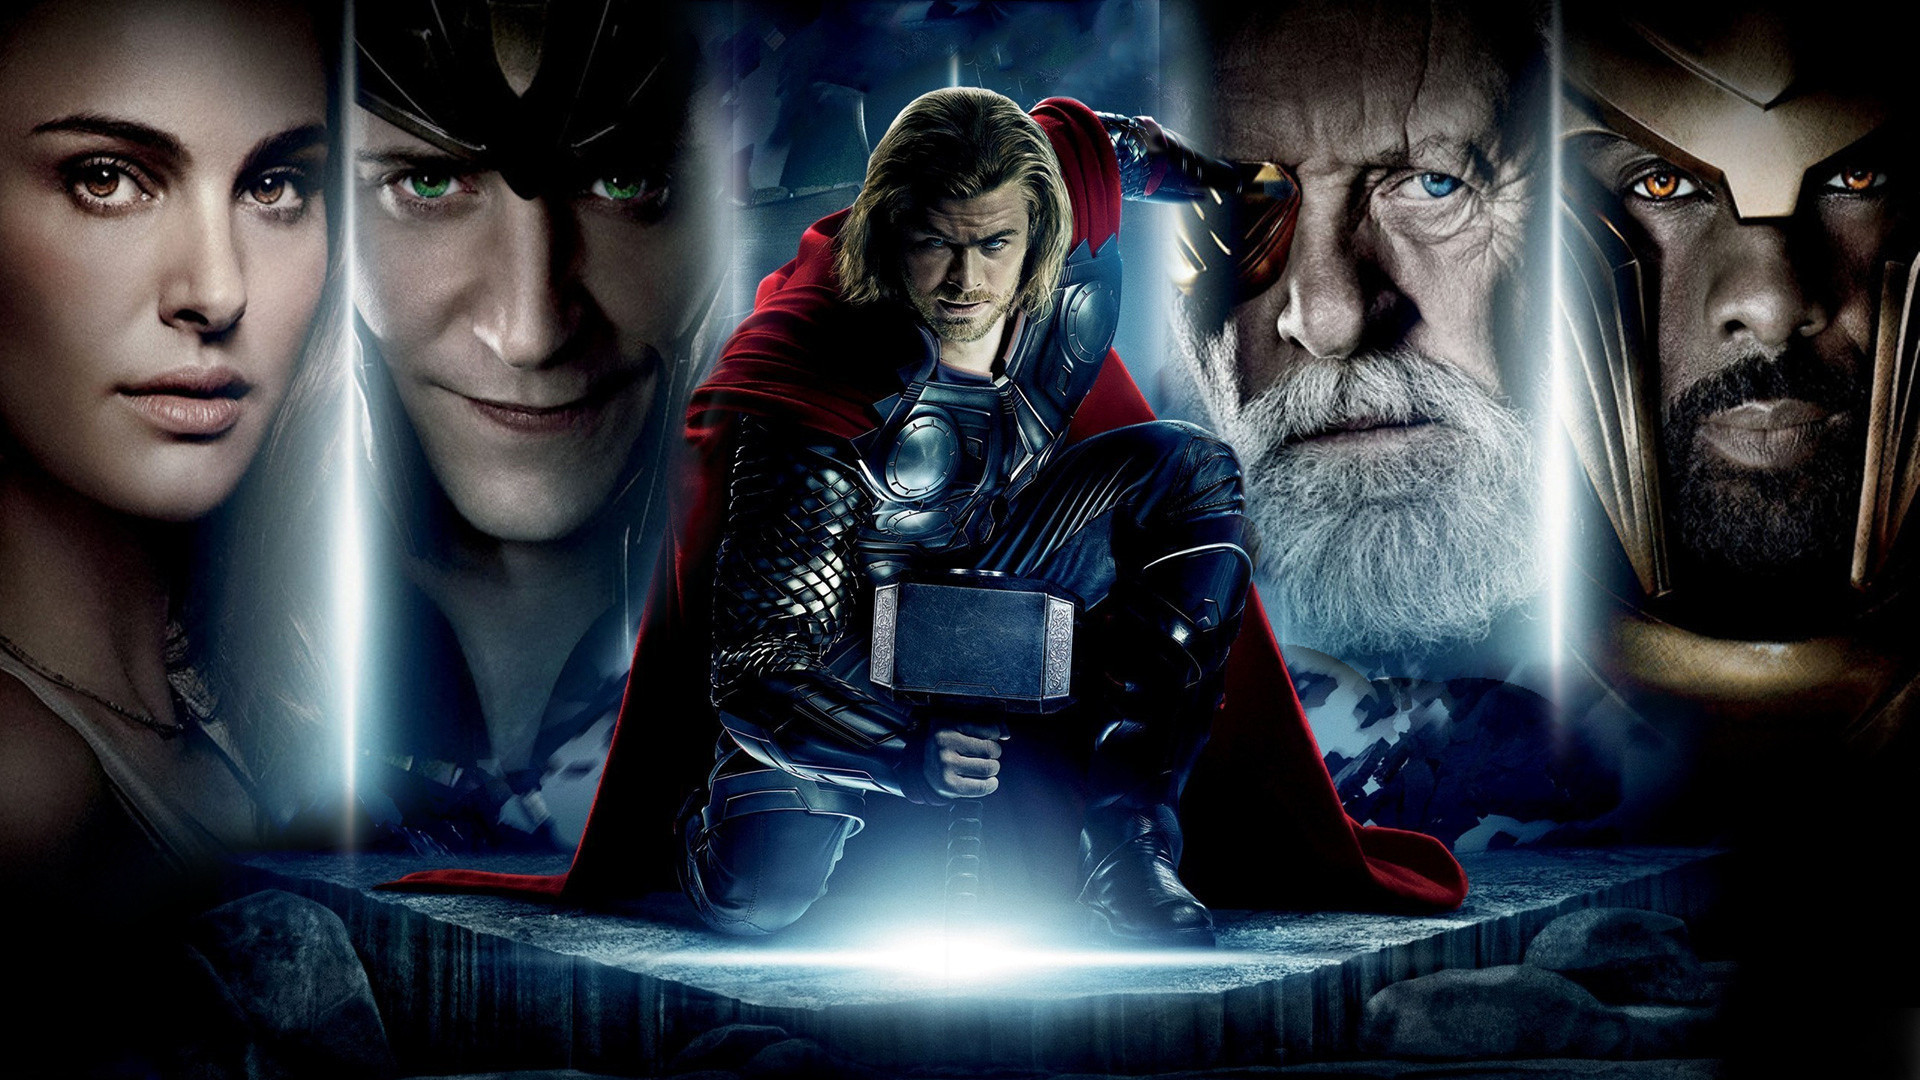 The Avengers Thor HD Desktop Wallpaper High Definition Mobile 1920x1080